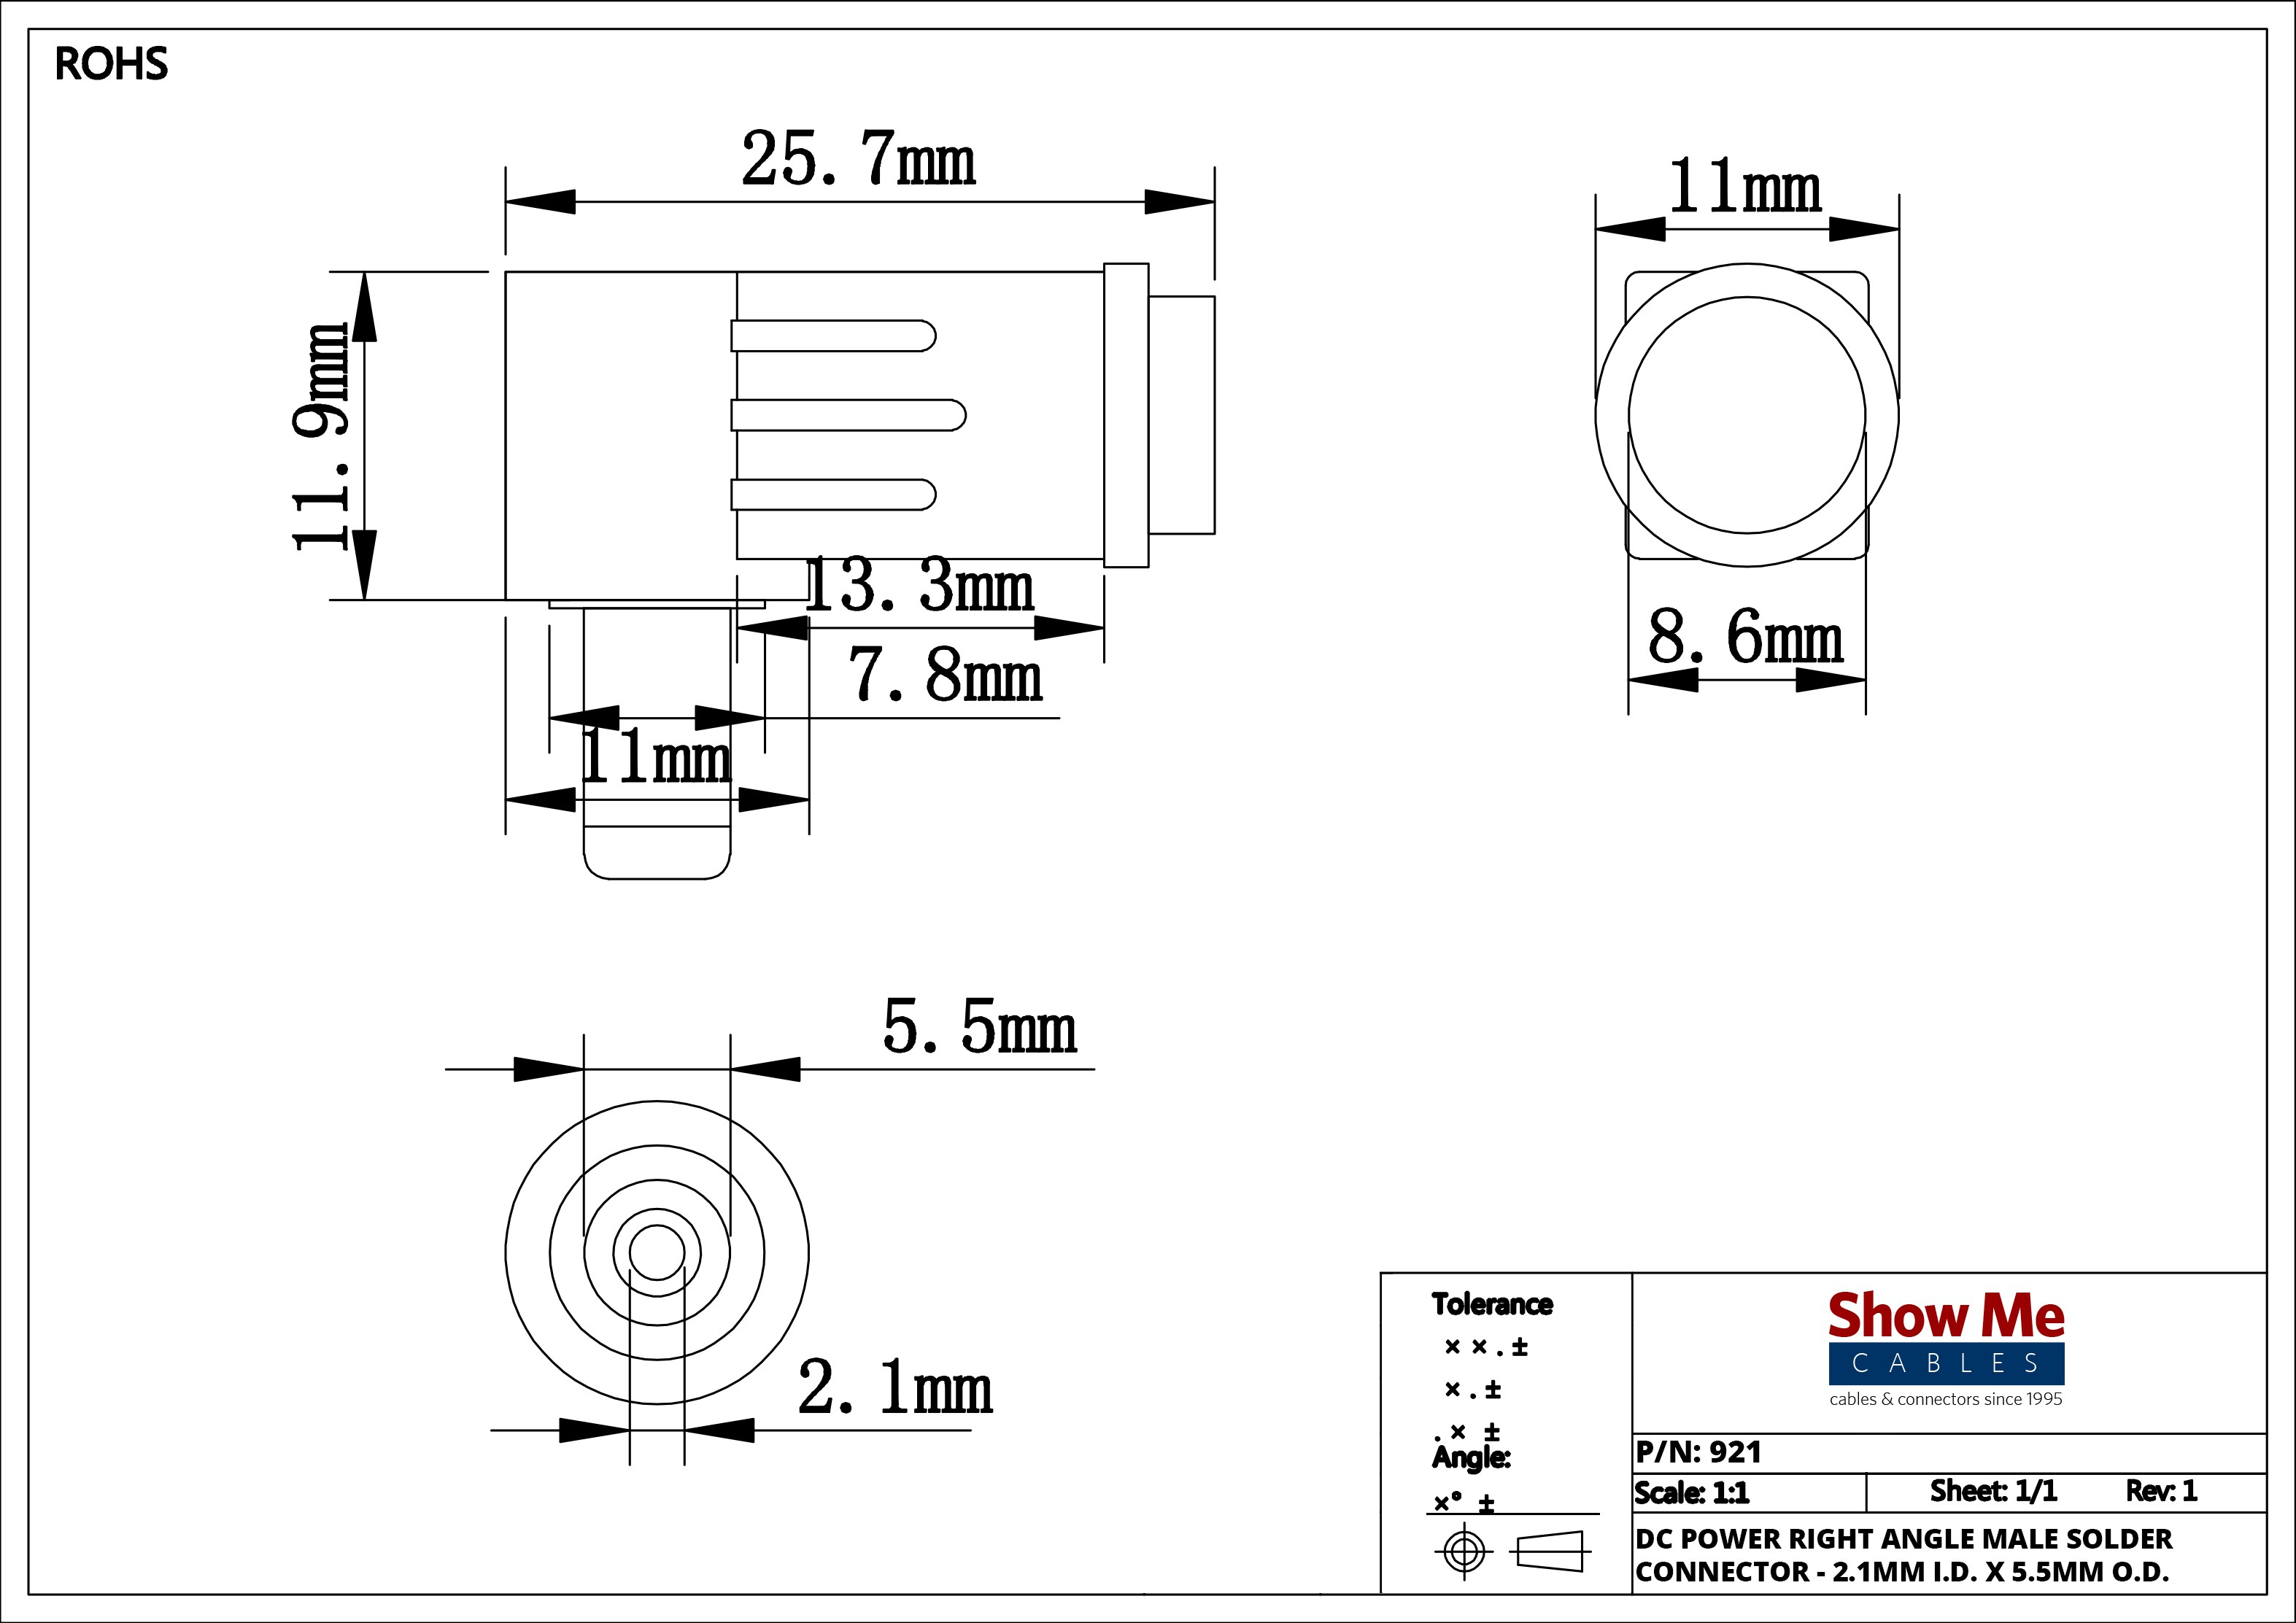 bridgeport series 2 wiring diagram Download-home speaker wiring diagram Collection 3 5 Mm Stereo Jack Wiring Diagram Elegant 2 5mm DOWNLOAD Wiring Diagram 10-e